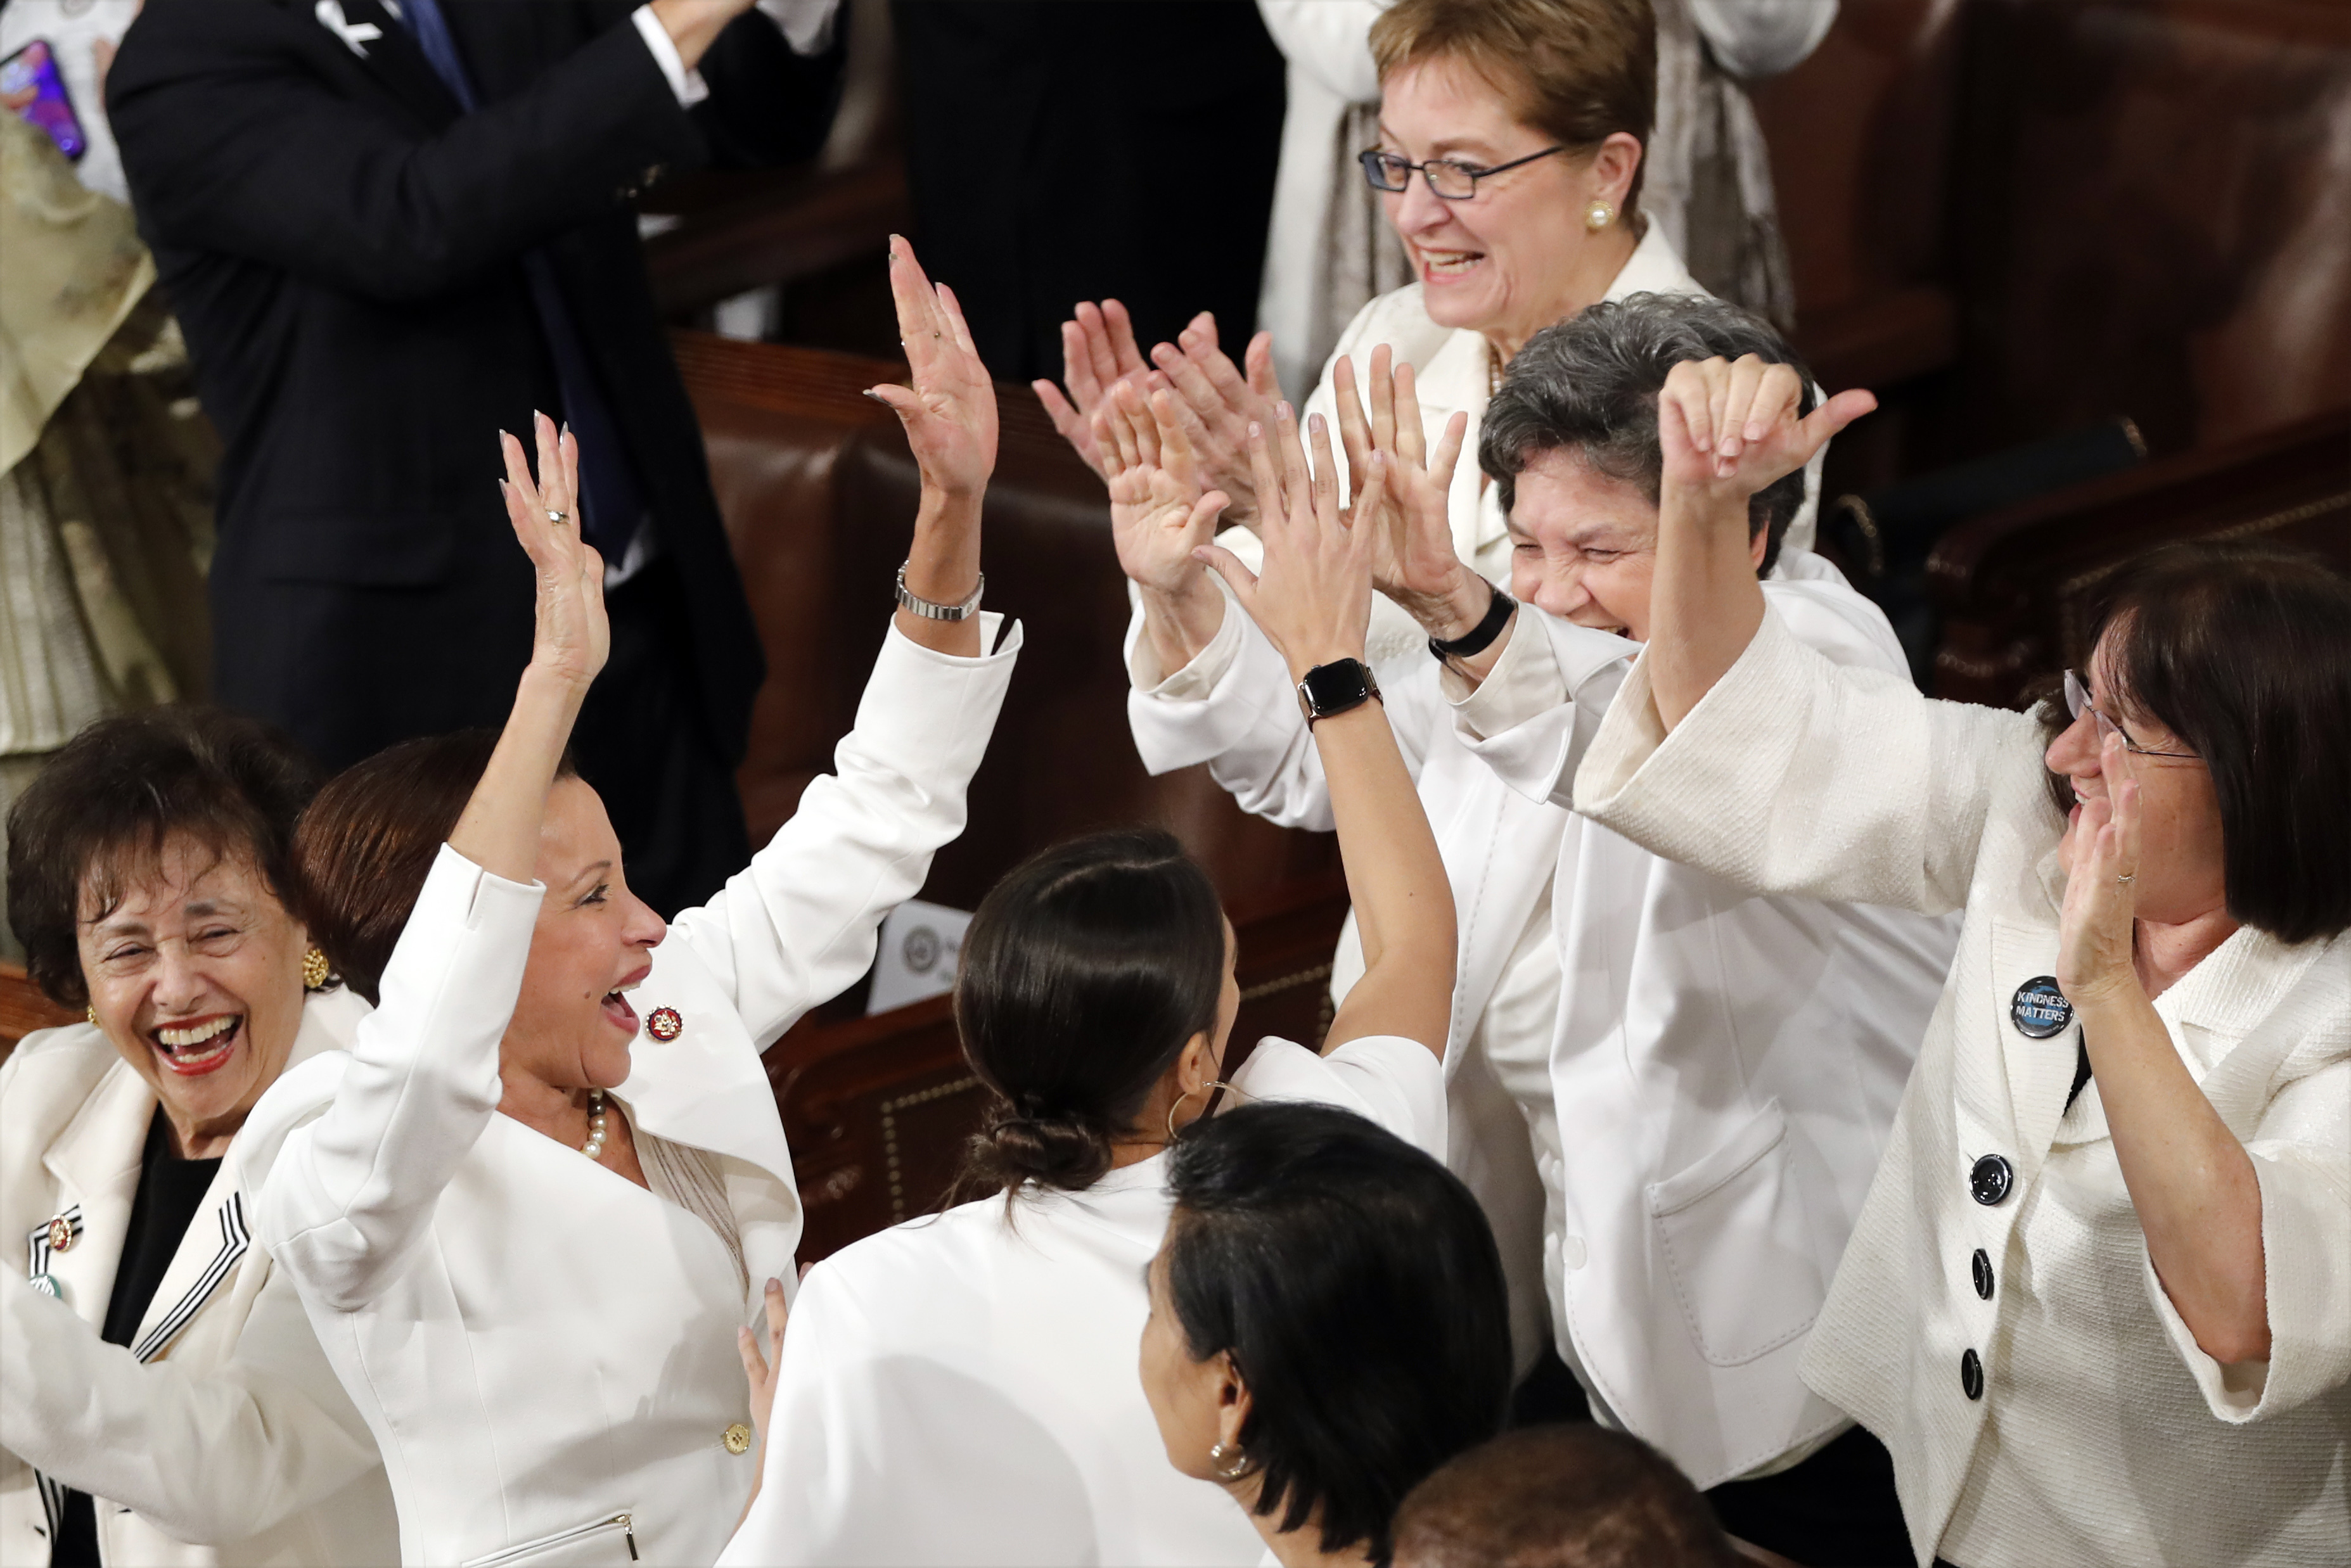 Members of Congress cheer after President Donald Trump acknowledges the record number of women in congress. Credit: PA